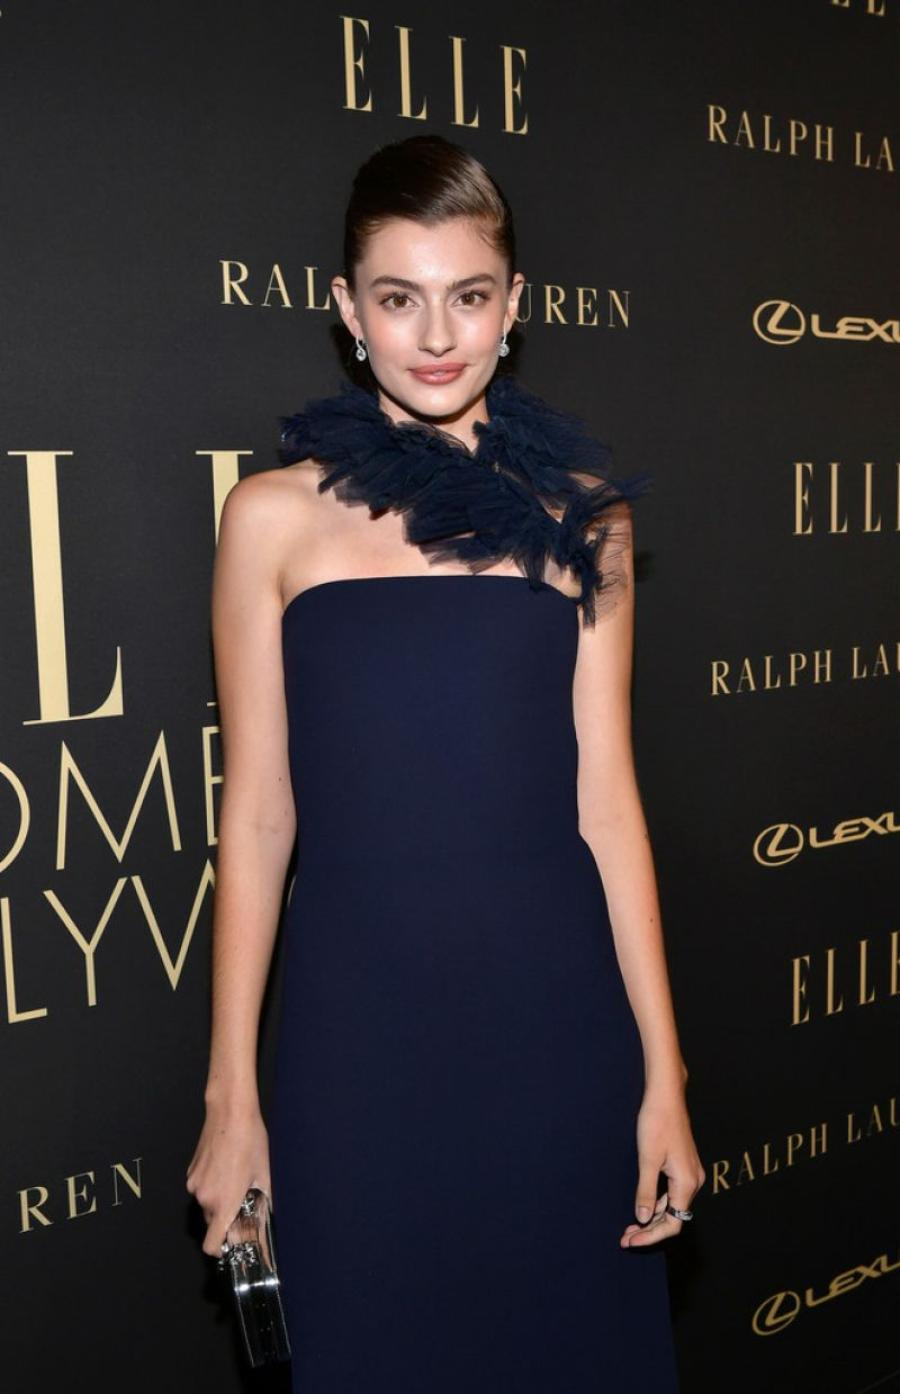 Diana Silvers at ELLE's 2019 Women In Hollywood Event